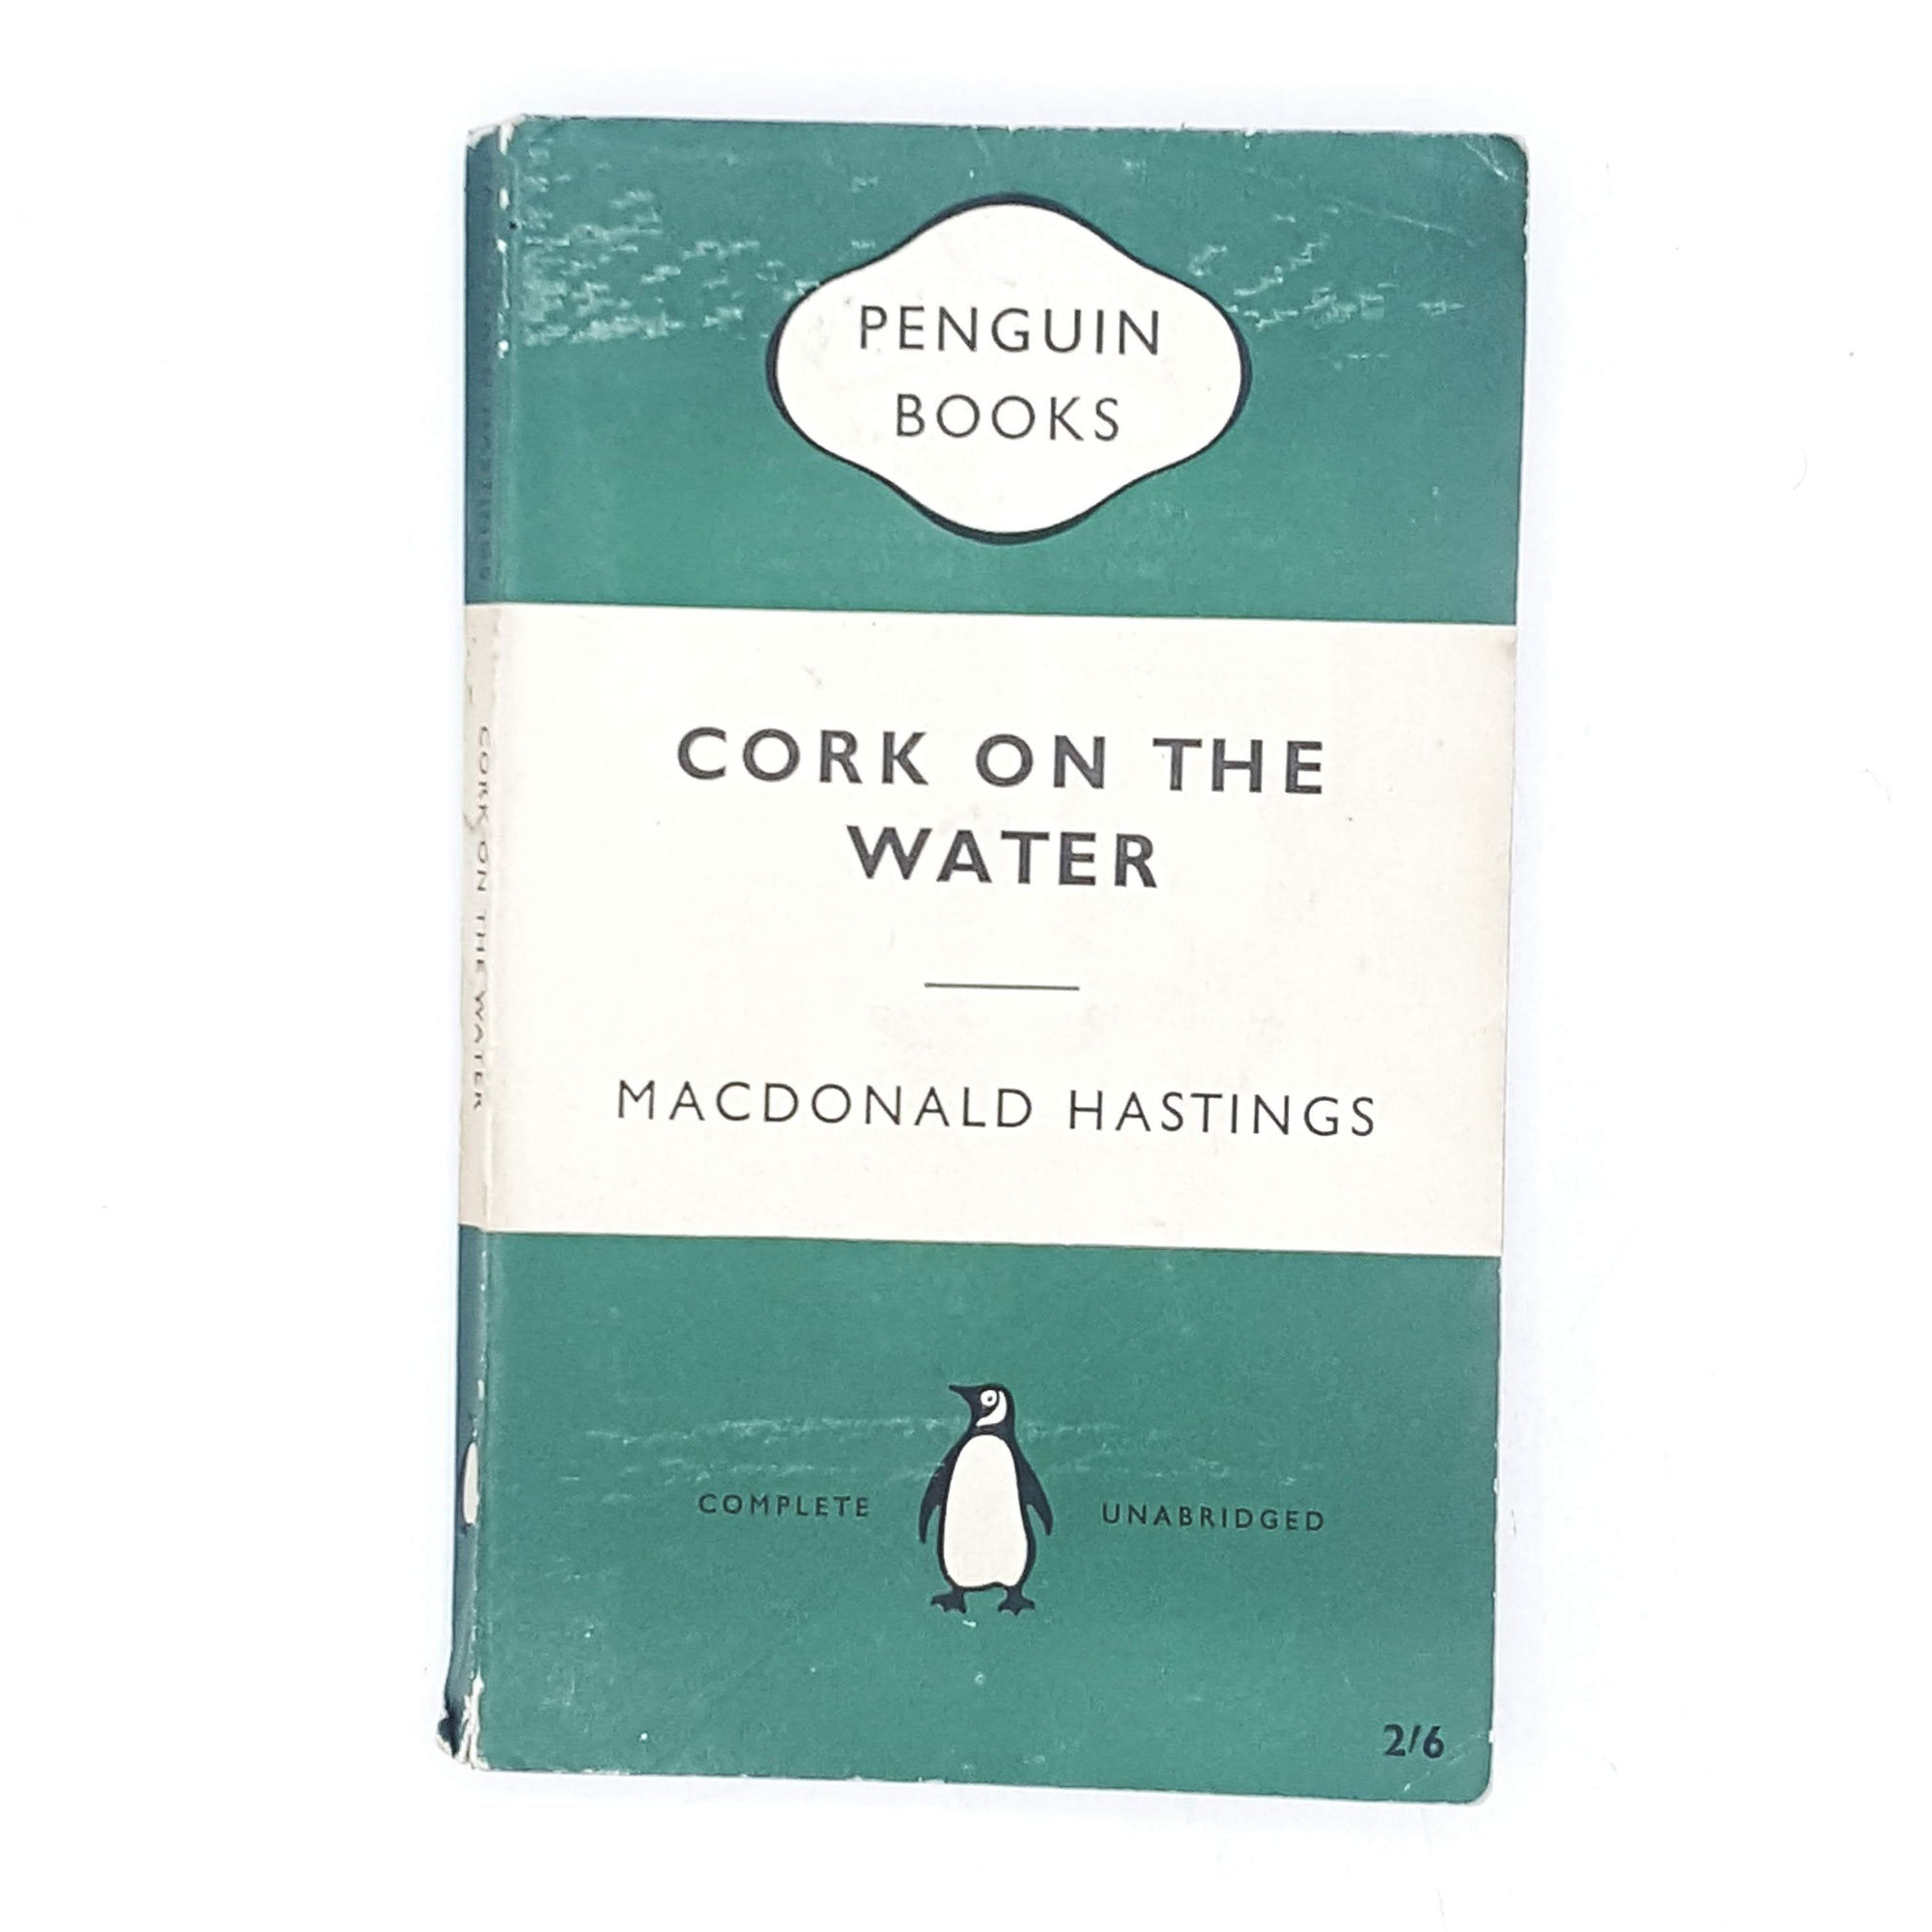 Cork on the Water by MacDonald Hastings 1959